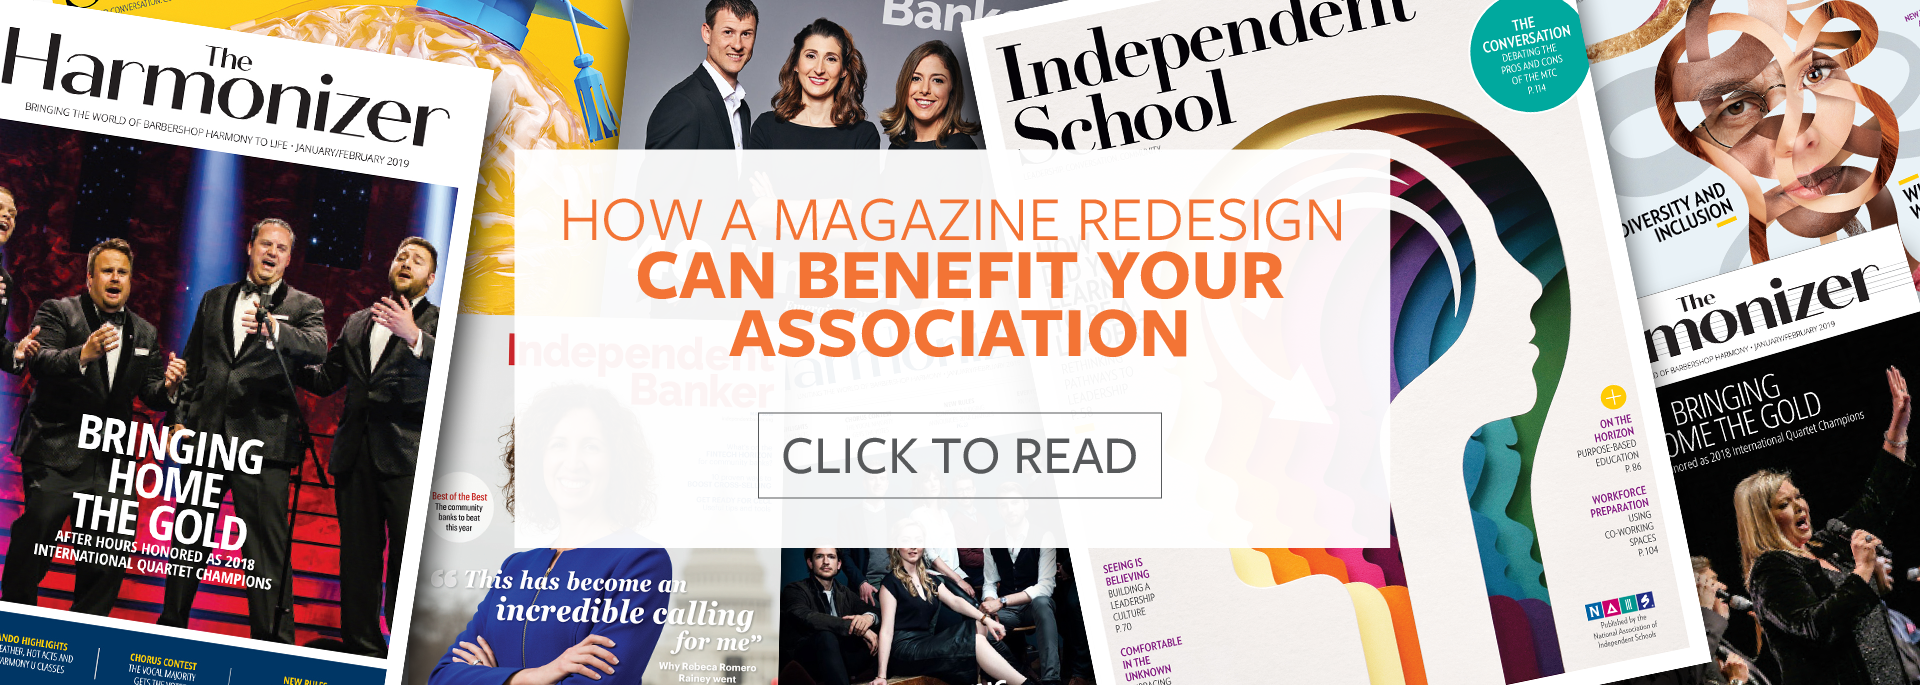 Read about How a Magazine Redesign Can Benefit Your Association